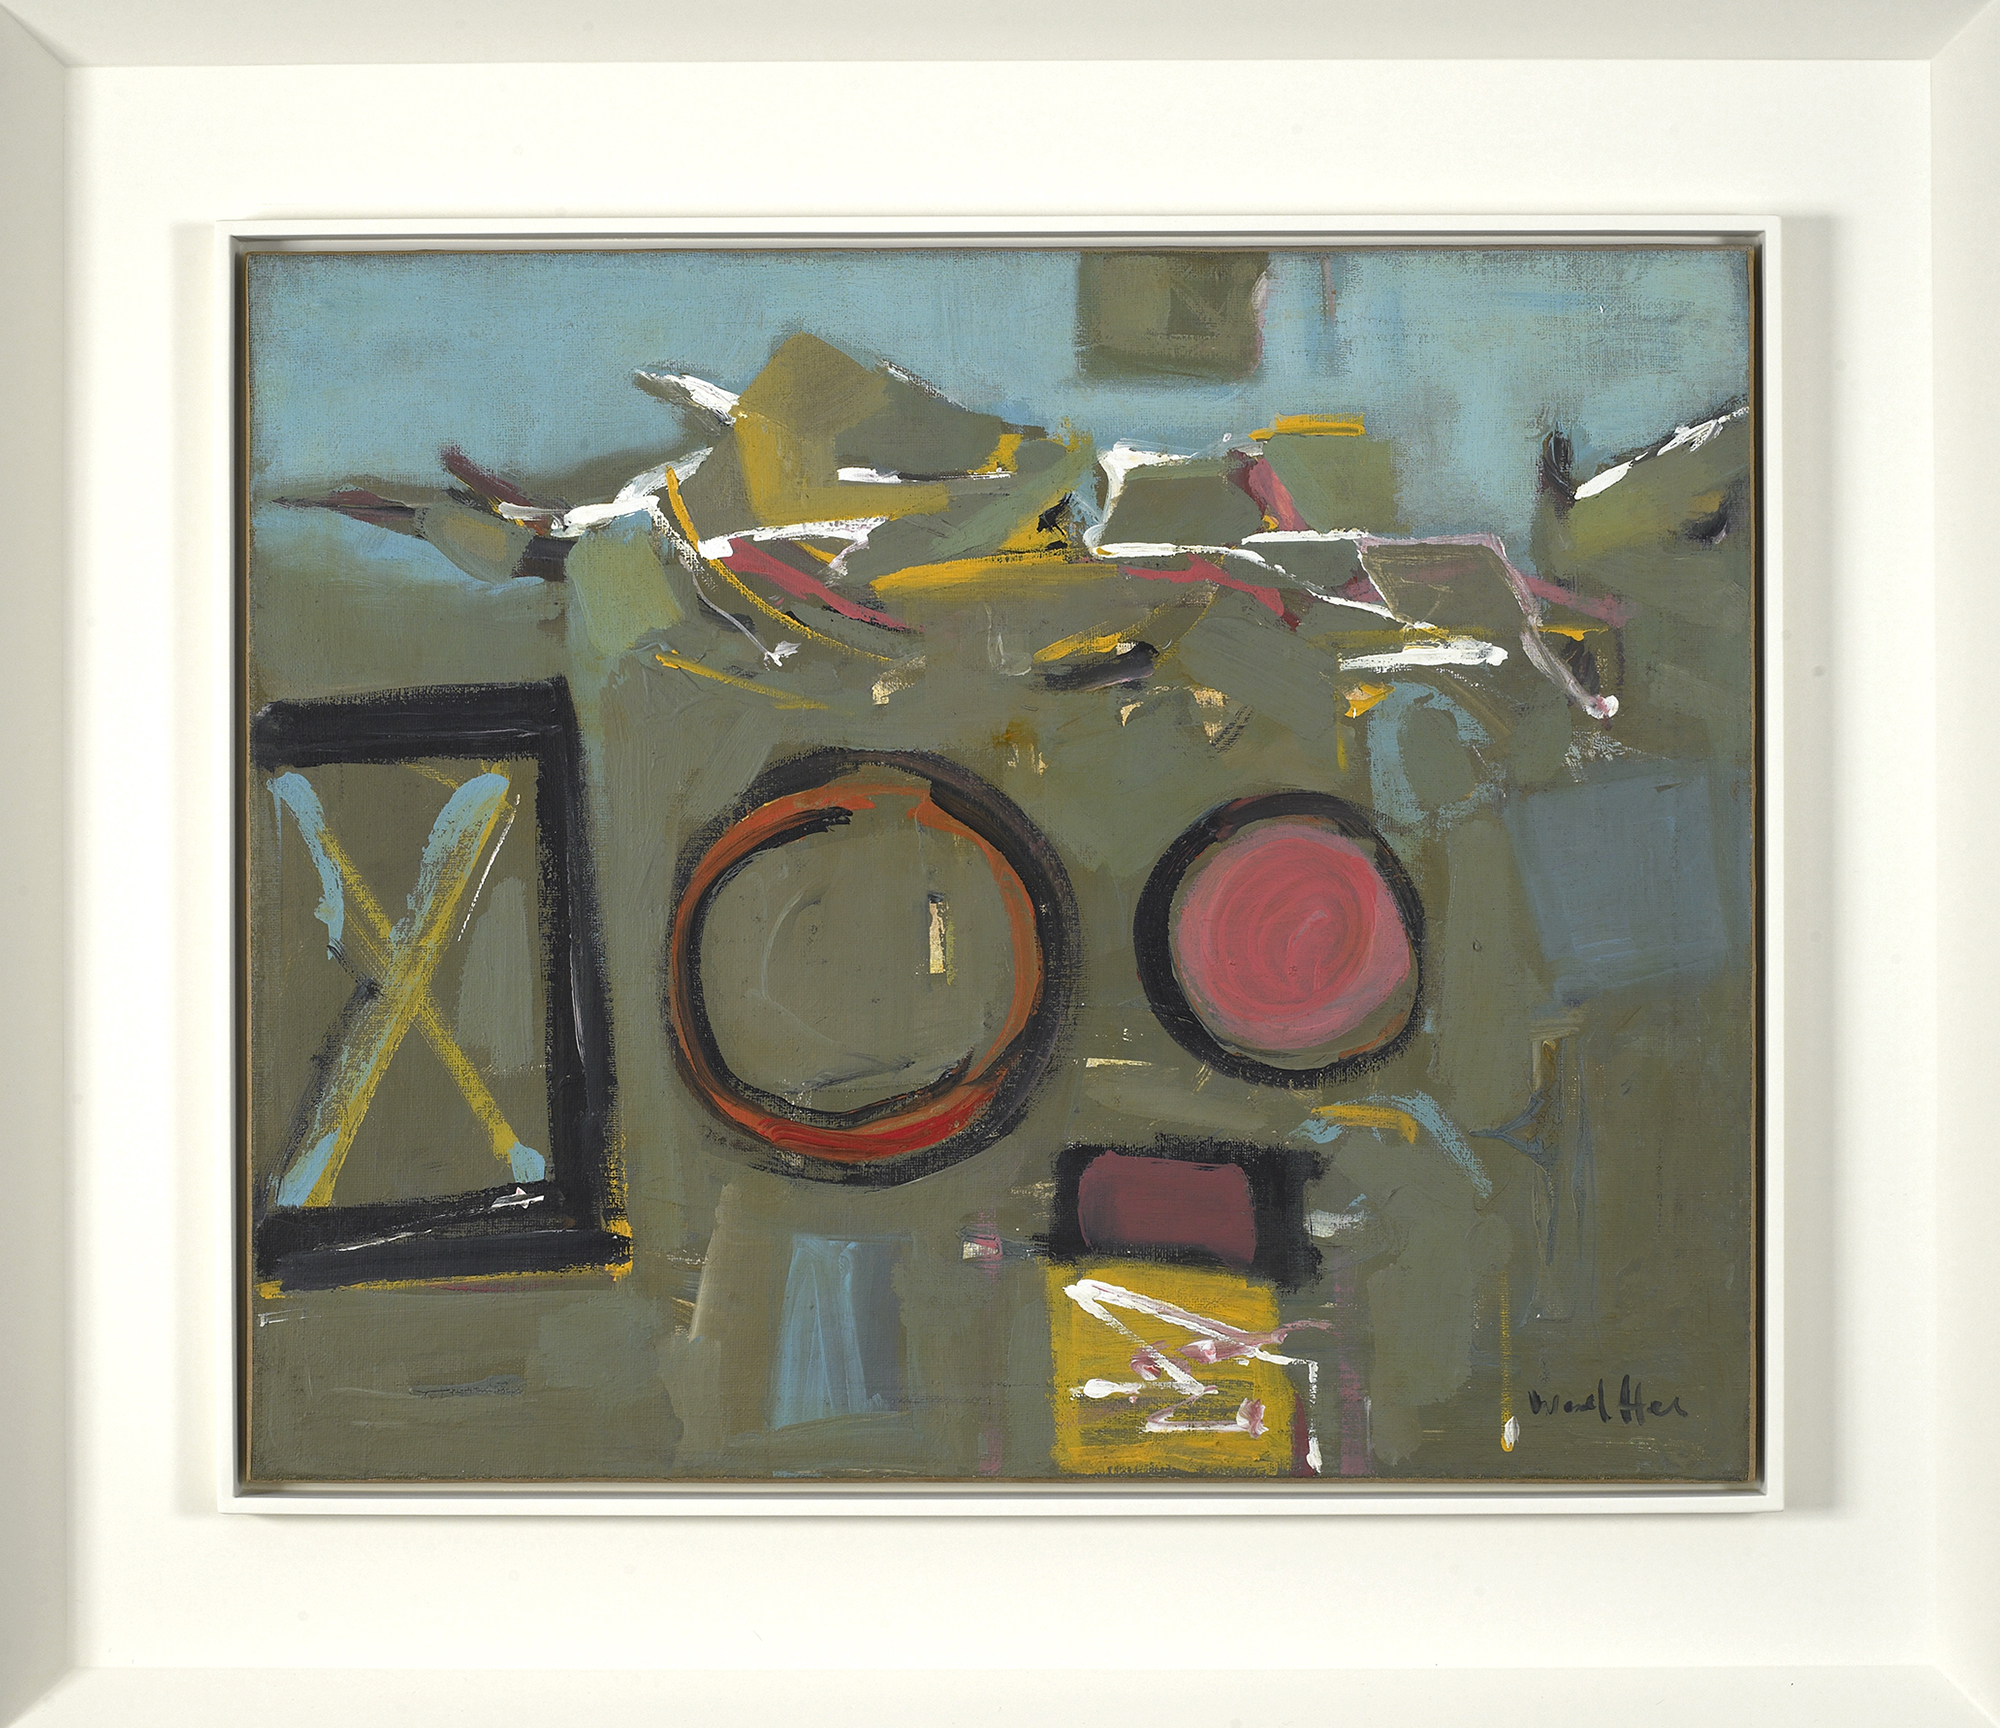 SOLD  Untitled   ,  Oil on canvas, 1950s, 23 x 27 1/2 inches